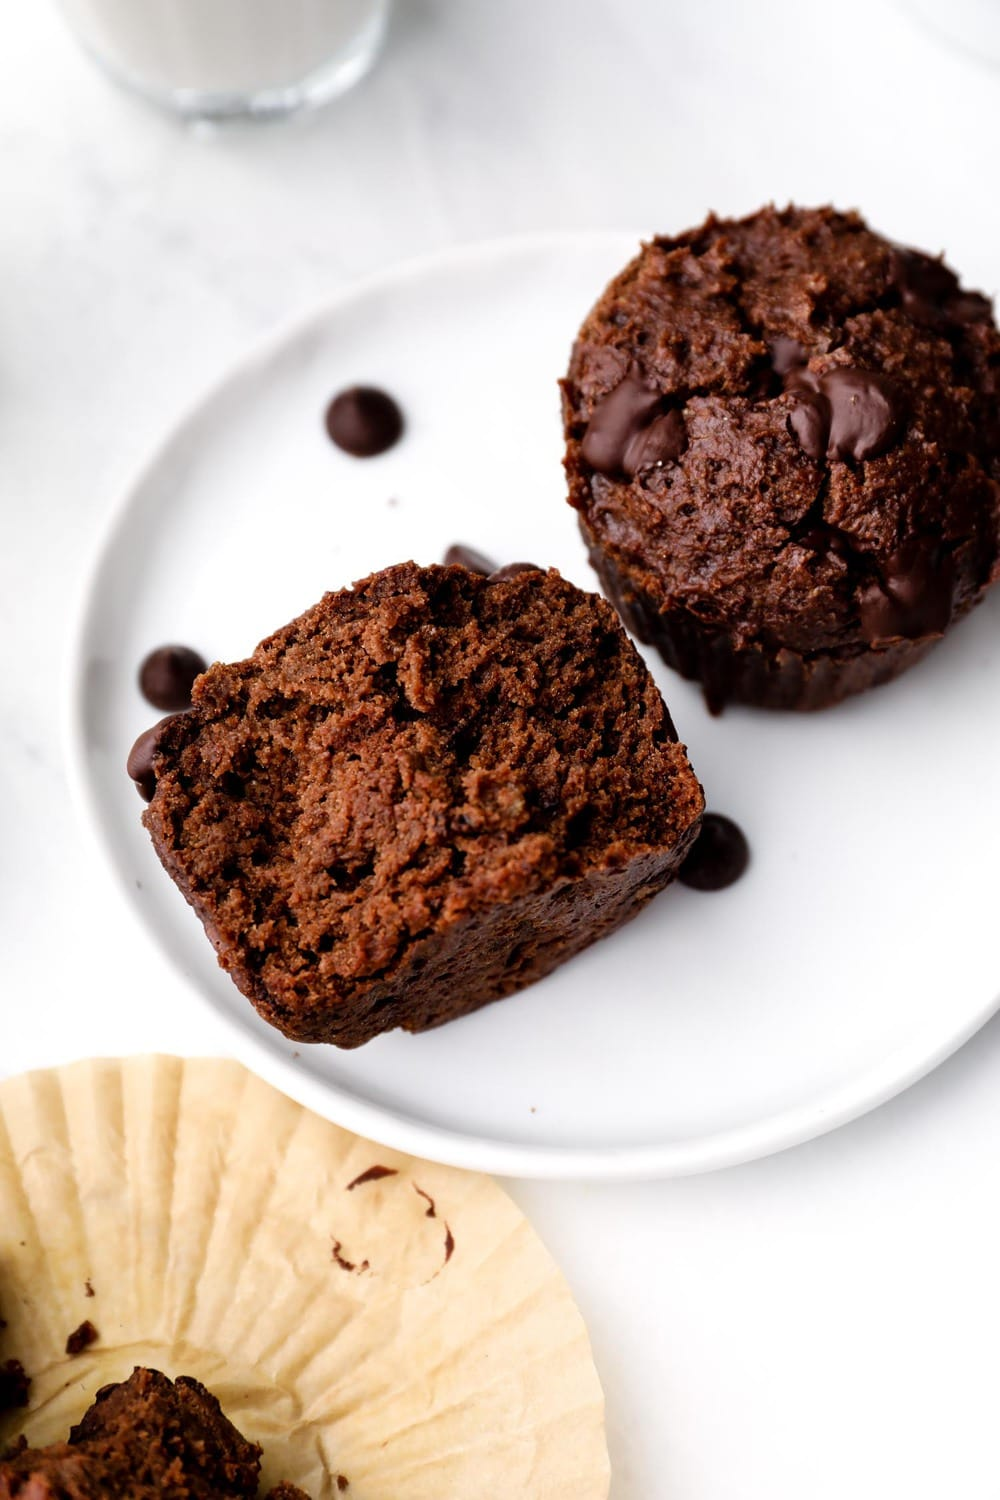 Gluten Free Chocolate Muffins with a fudgy texture